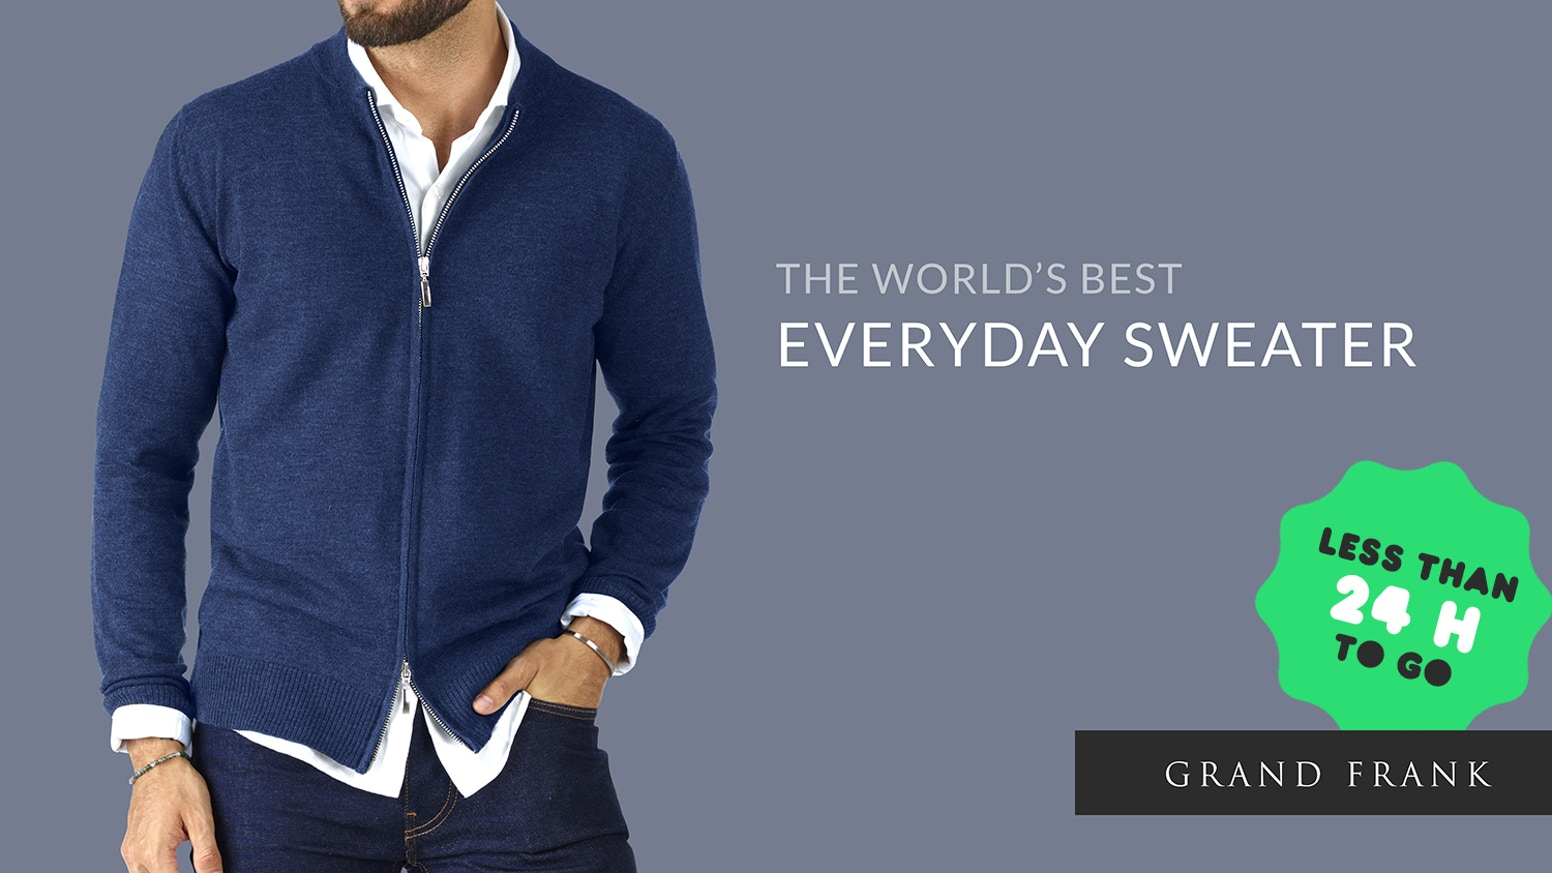 Intelligent sweaters designed with New Zealandic merino wool and Coolmax® fibers that adjust depending on the temperature.